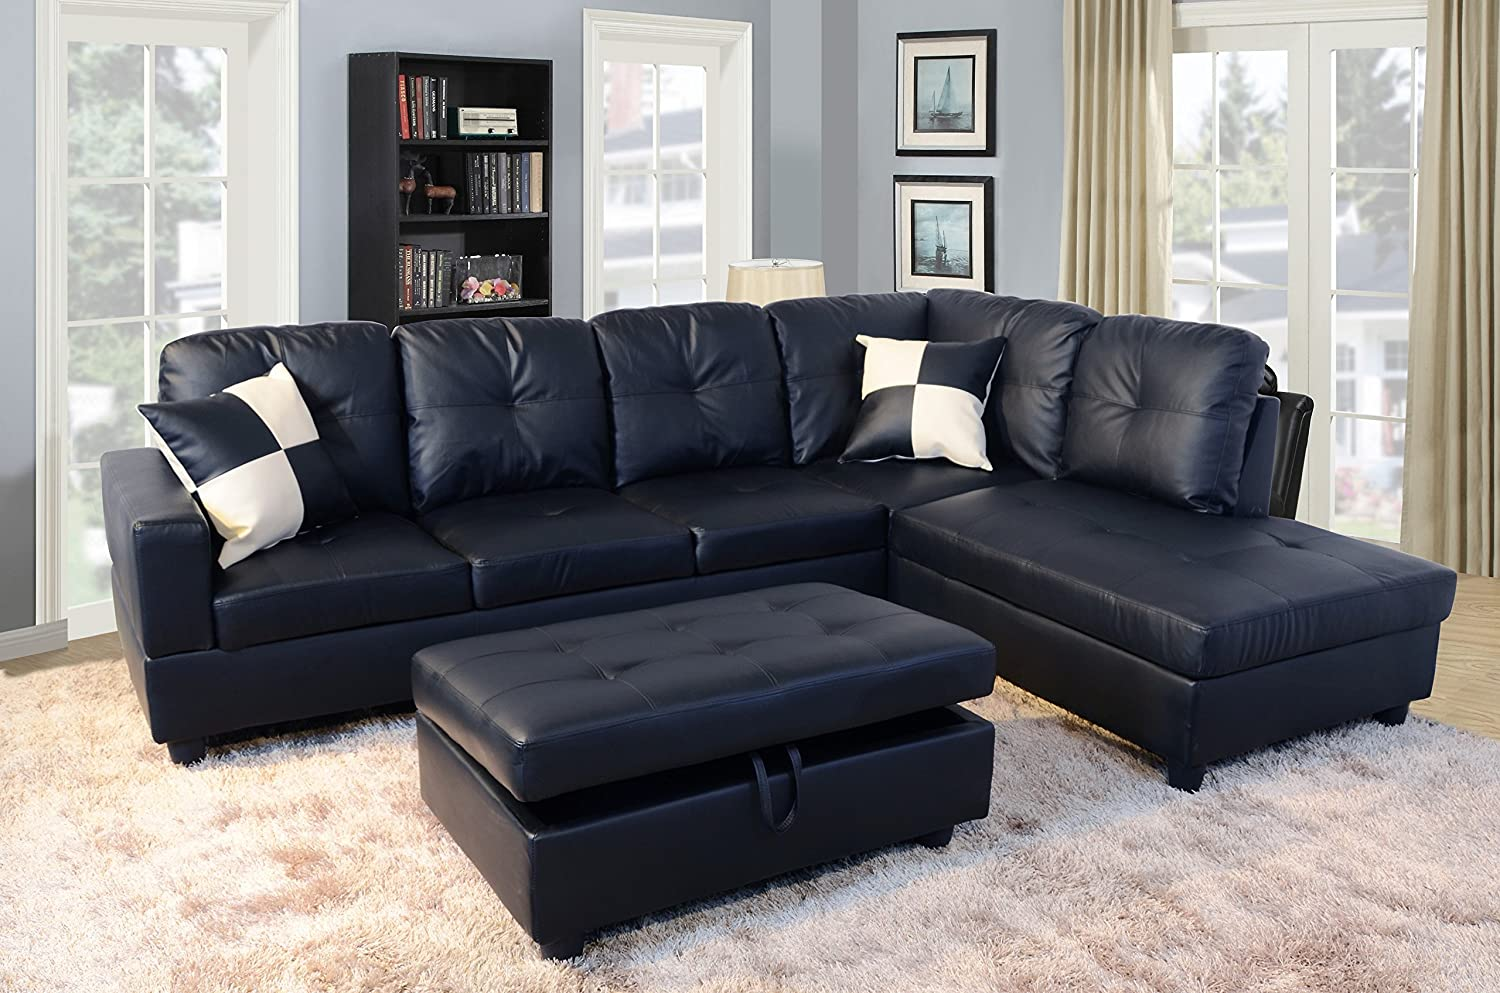 Amazon.com: Lifestyle Furniture Urbania Right Hand Facing Sectional, Black:  Kitchen & Dining